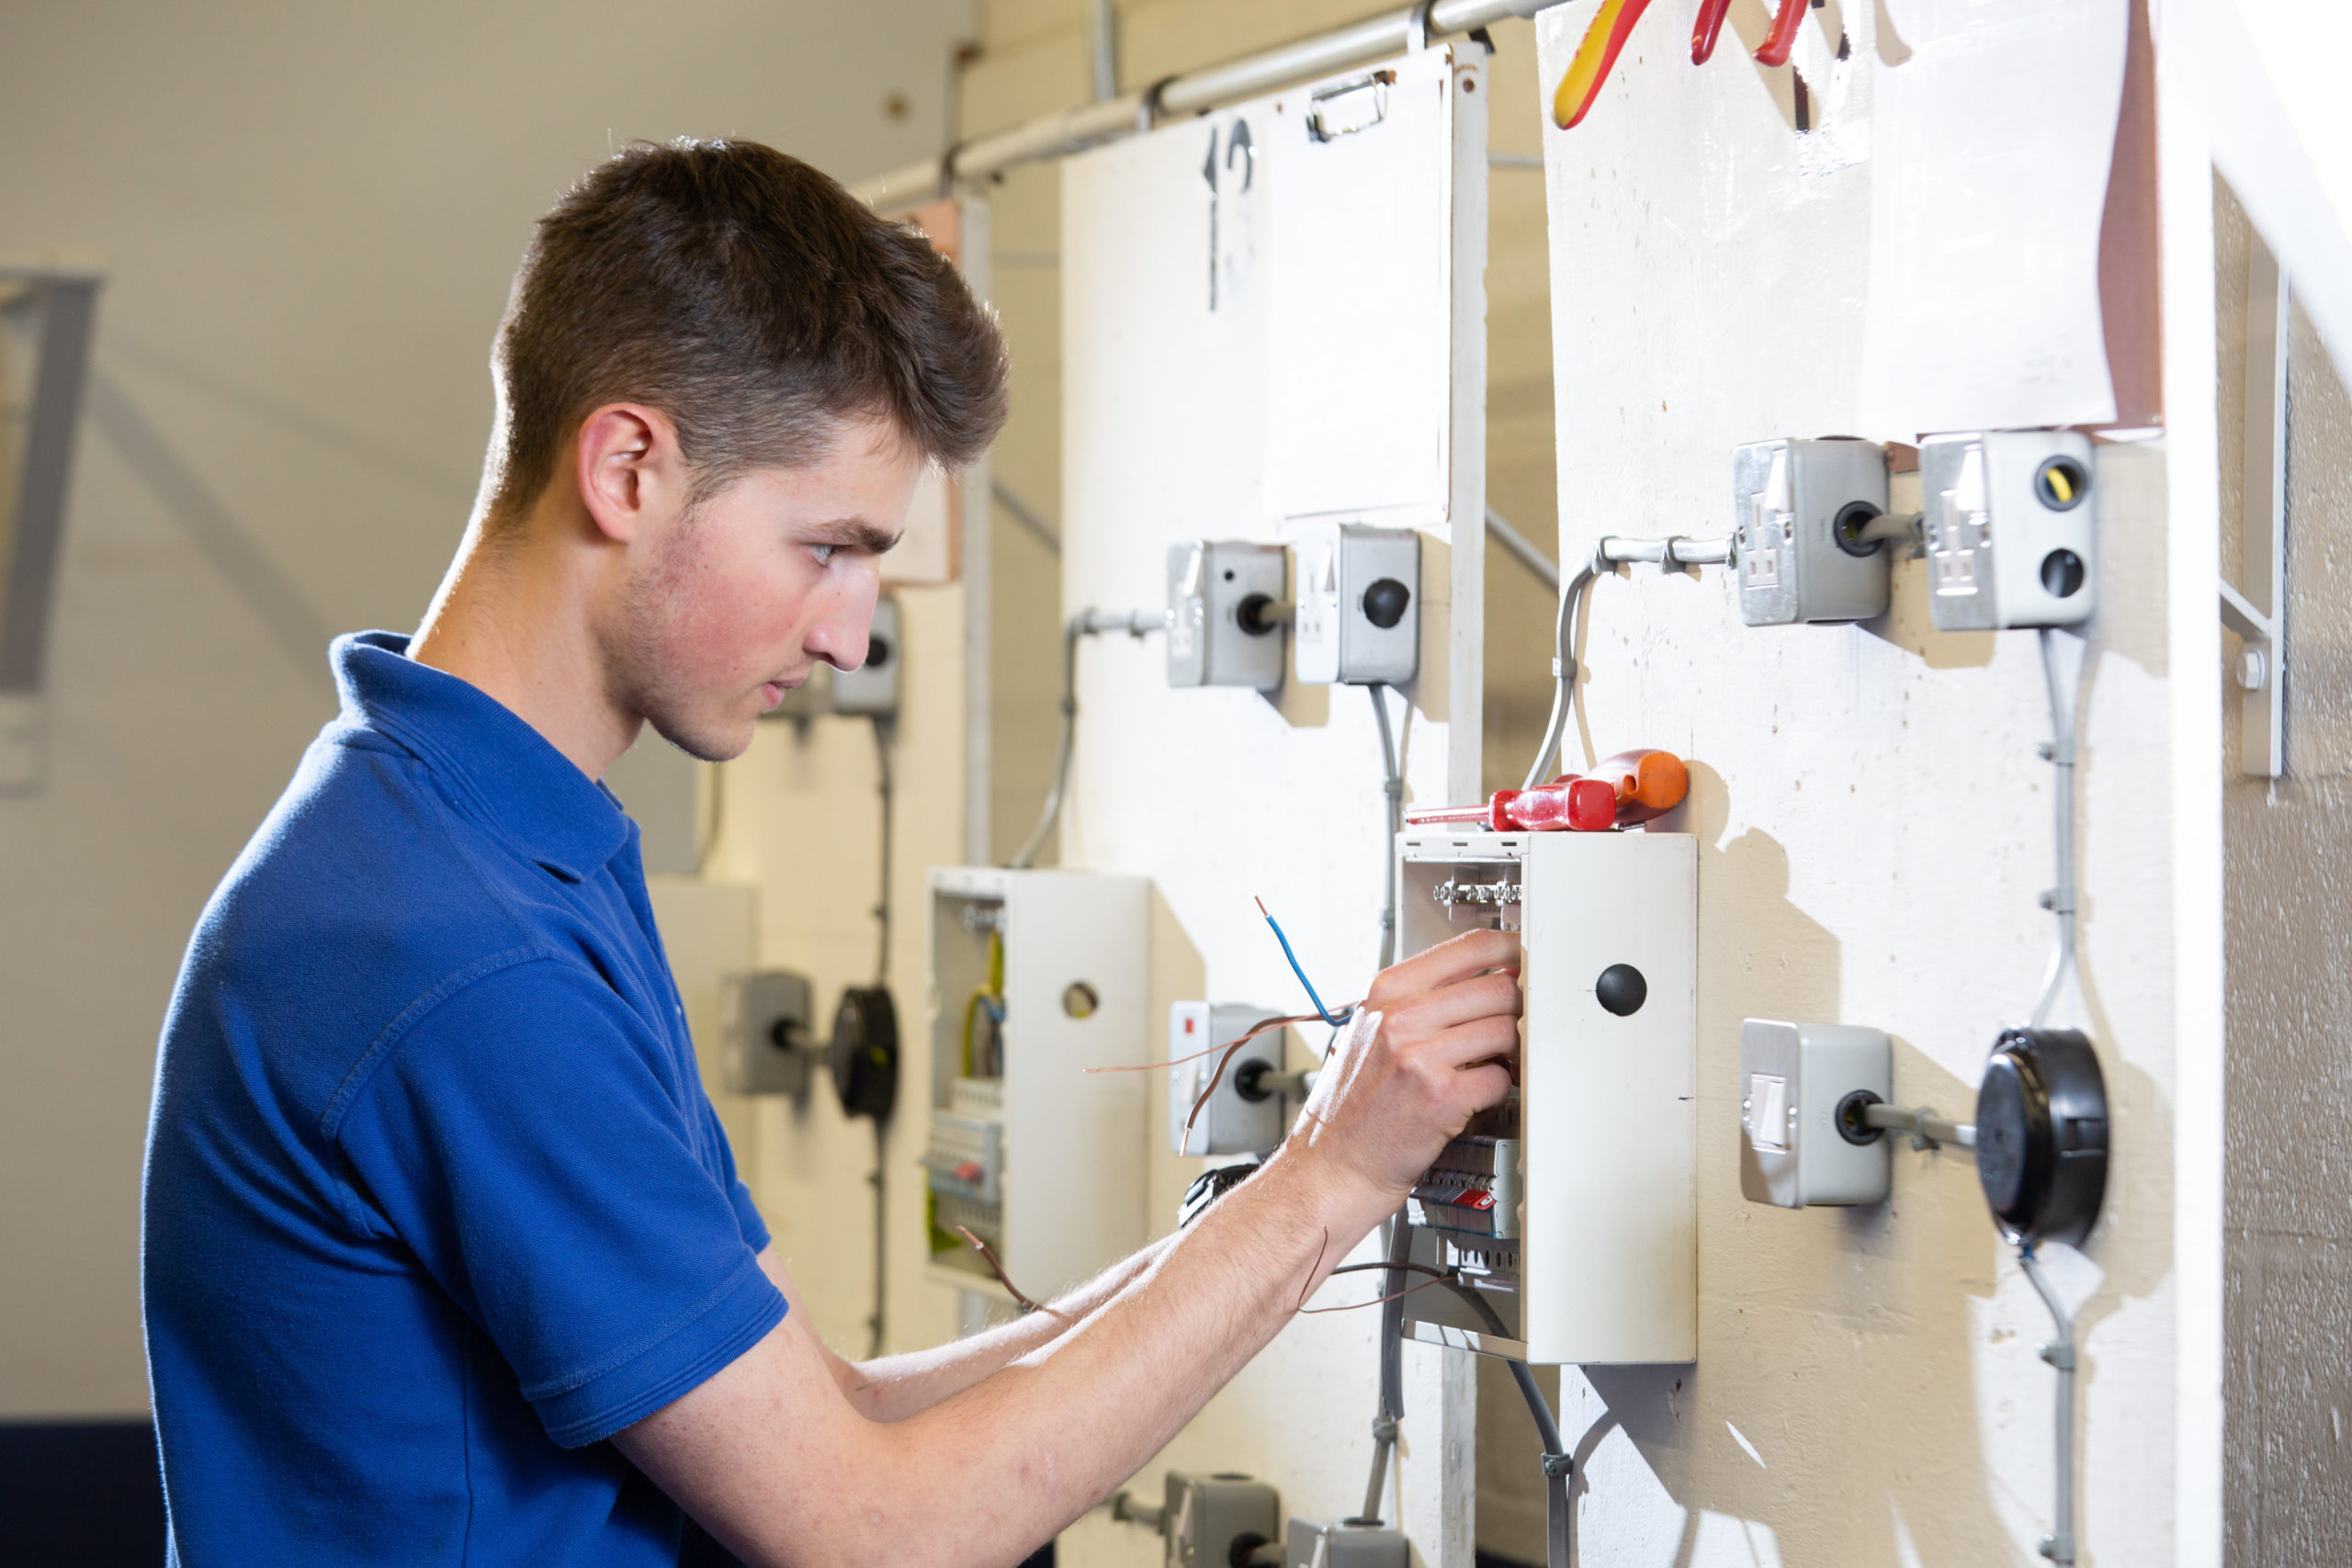 Mechatronics Maintenance Technician apprentice working on an electrical installation